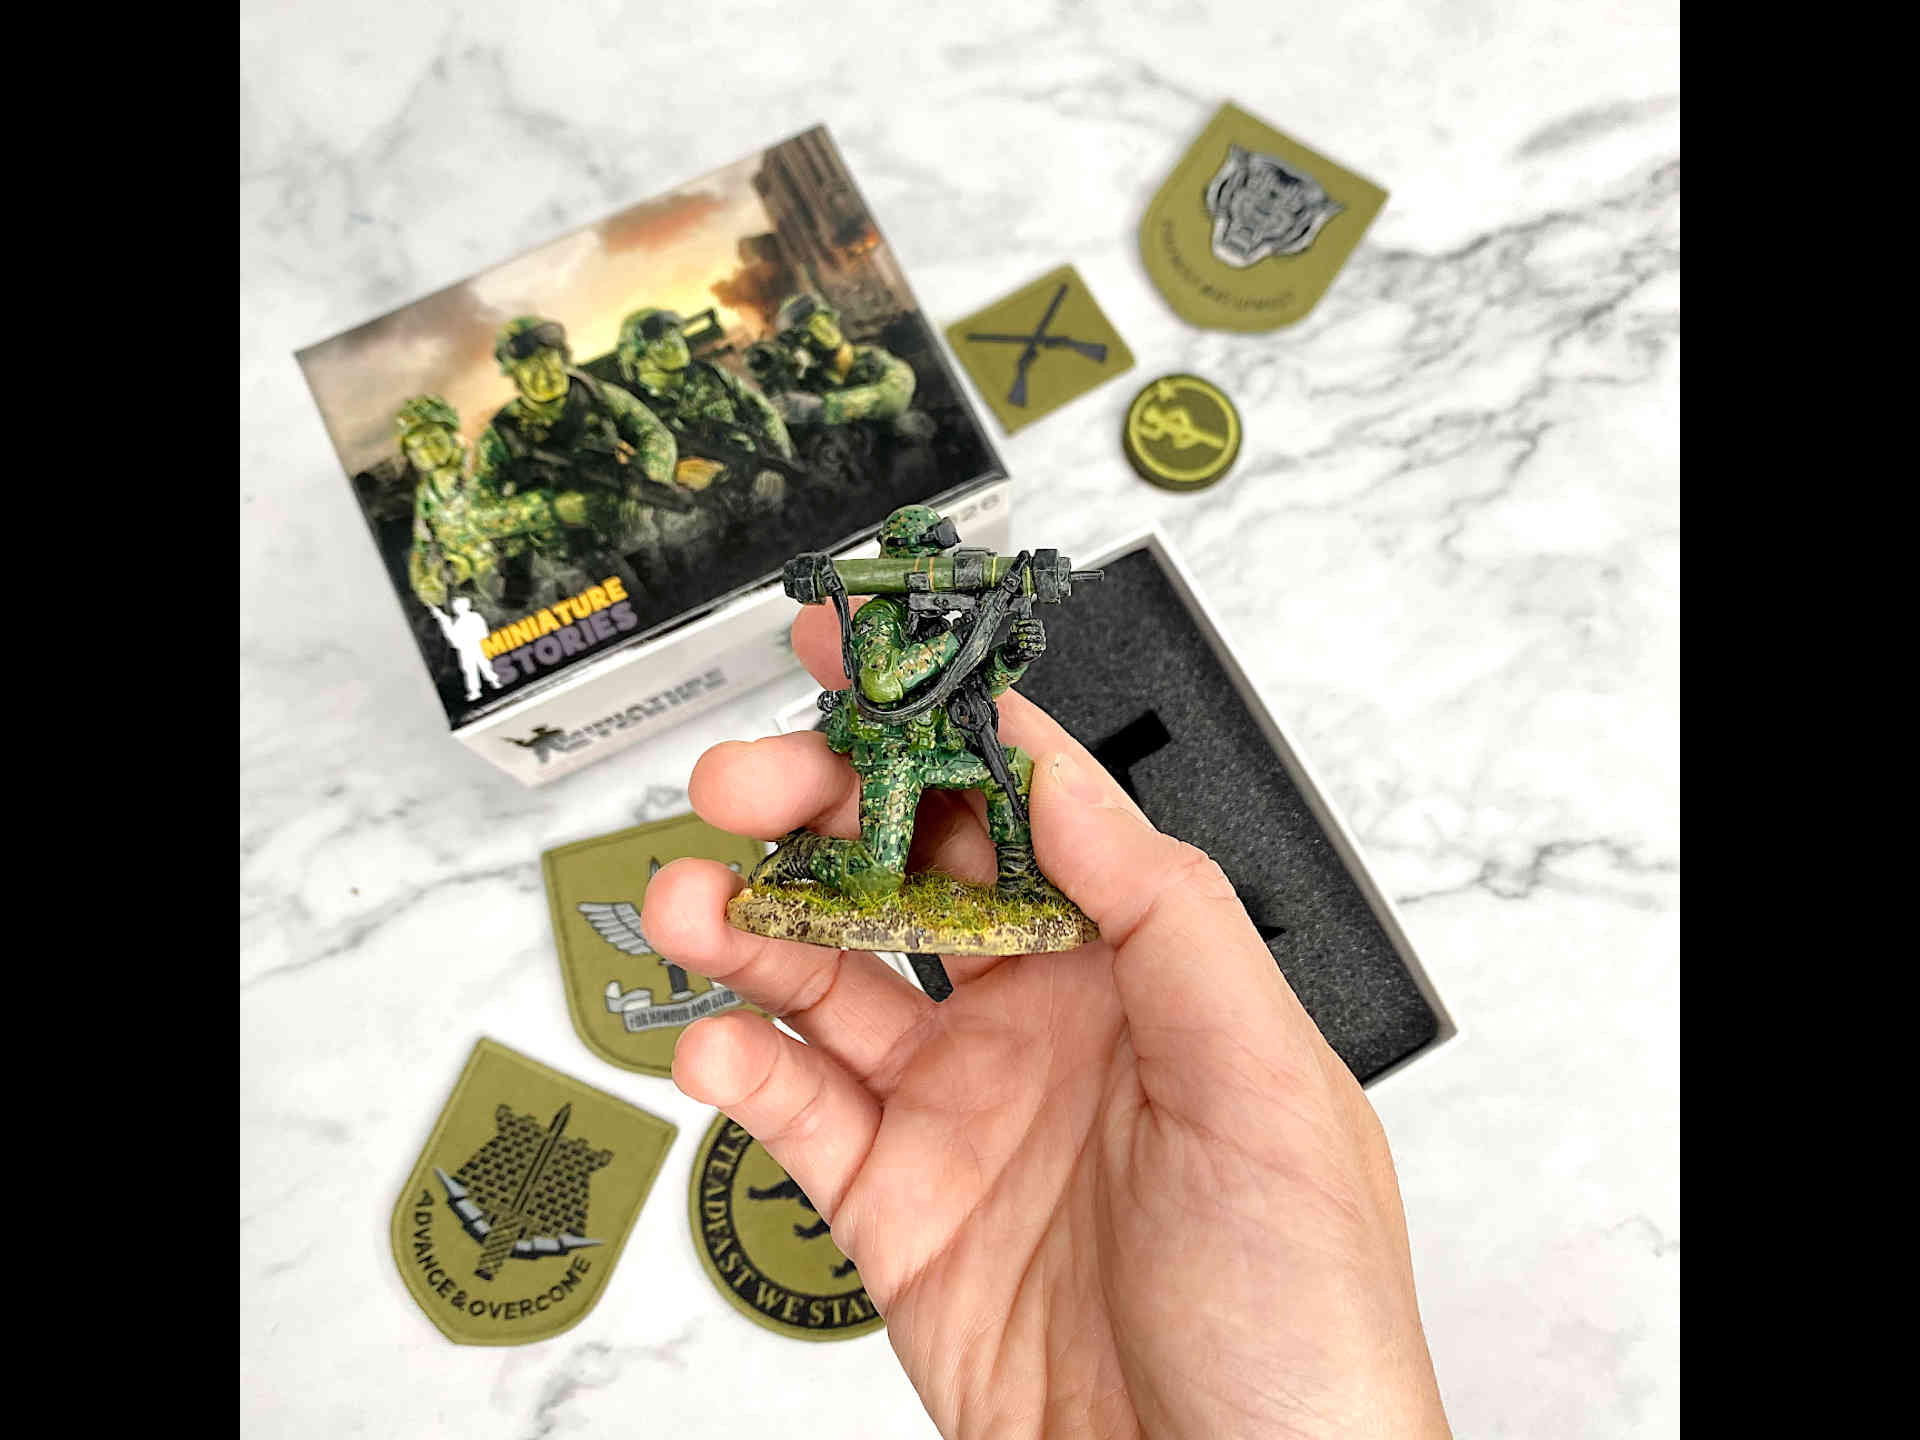 SAF miniature MATADOR Gunner aiming through sight Toy Soldier Collectible Figurine (scale)